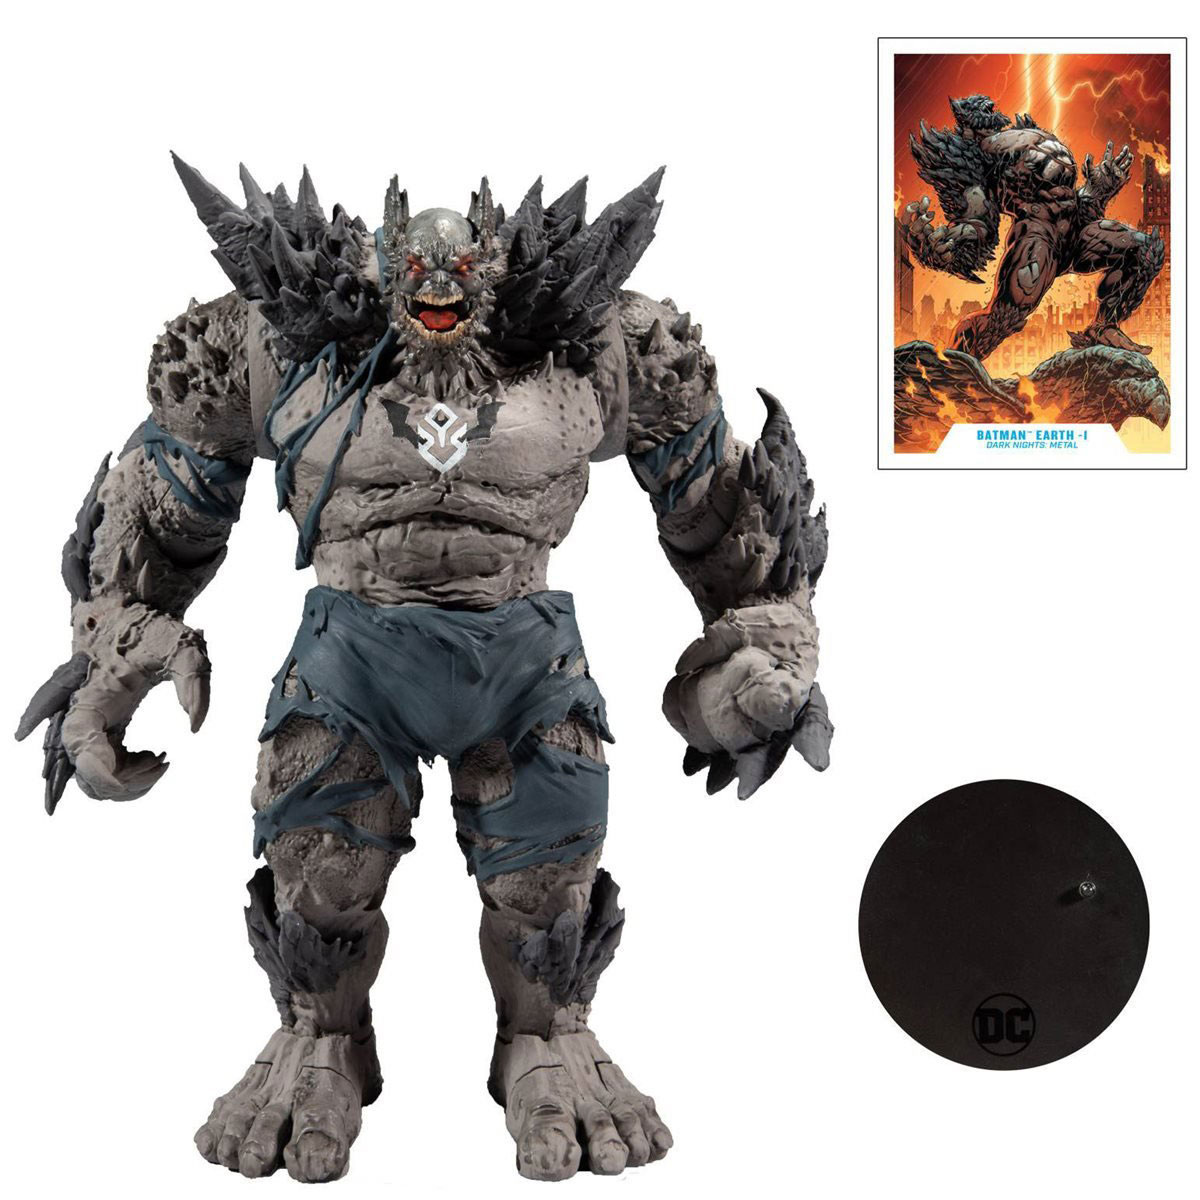 dc-multiverse-dark-nights-metal-earth-1-batman-devastator-action-figure-mcfarlane-toys